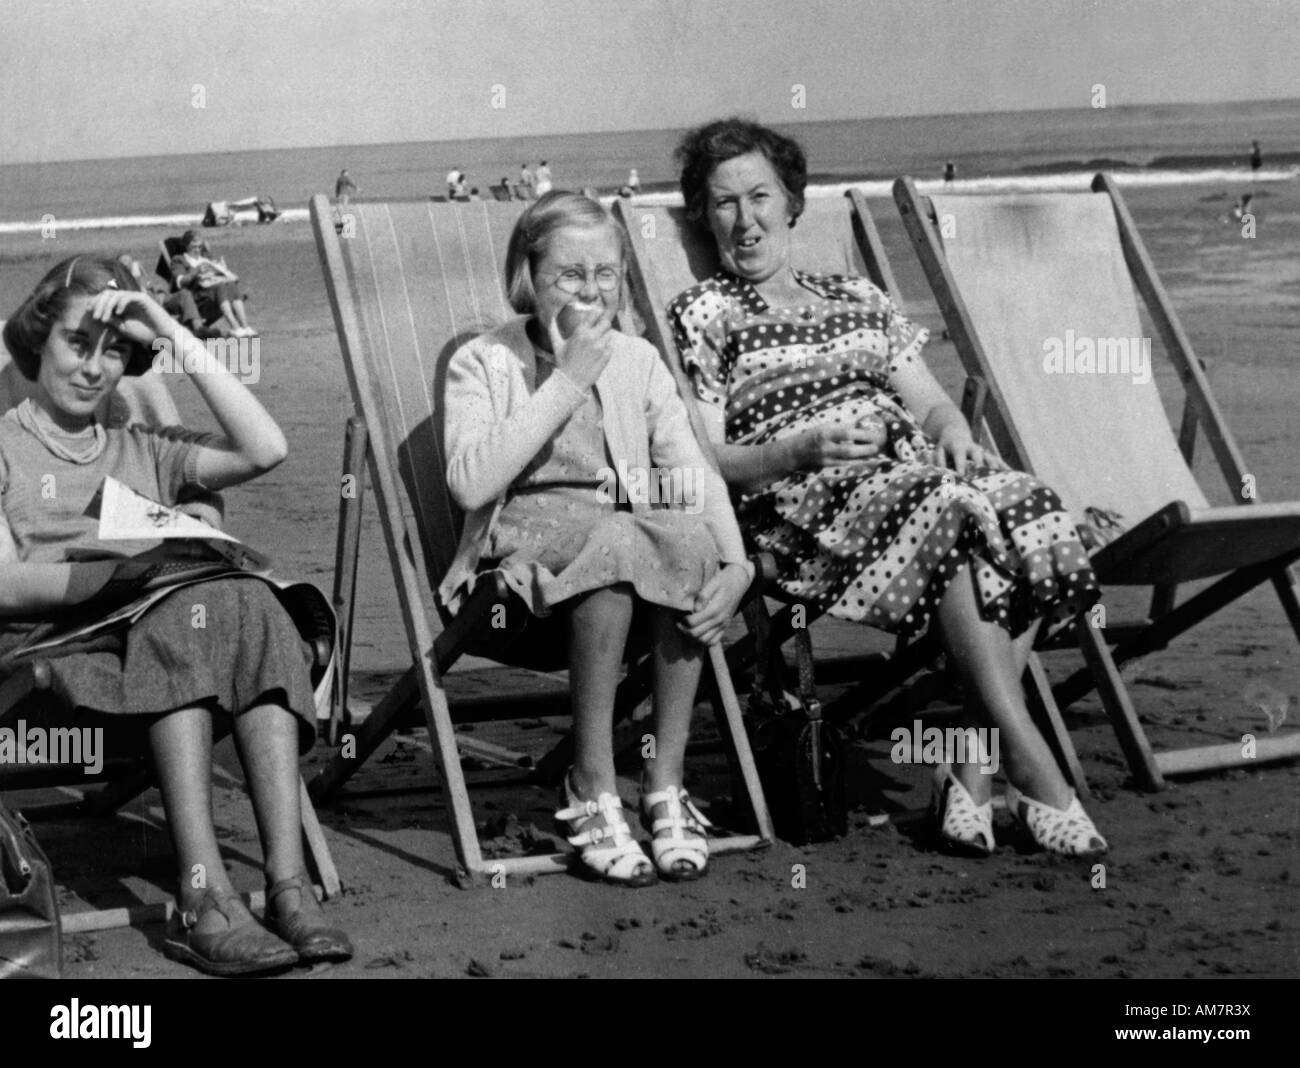 Old vintage family snapshot photograph of mother and two daughters sitting in deck chairs on beach